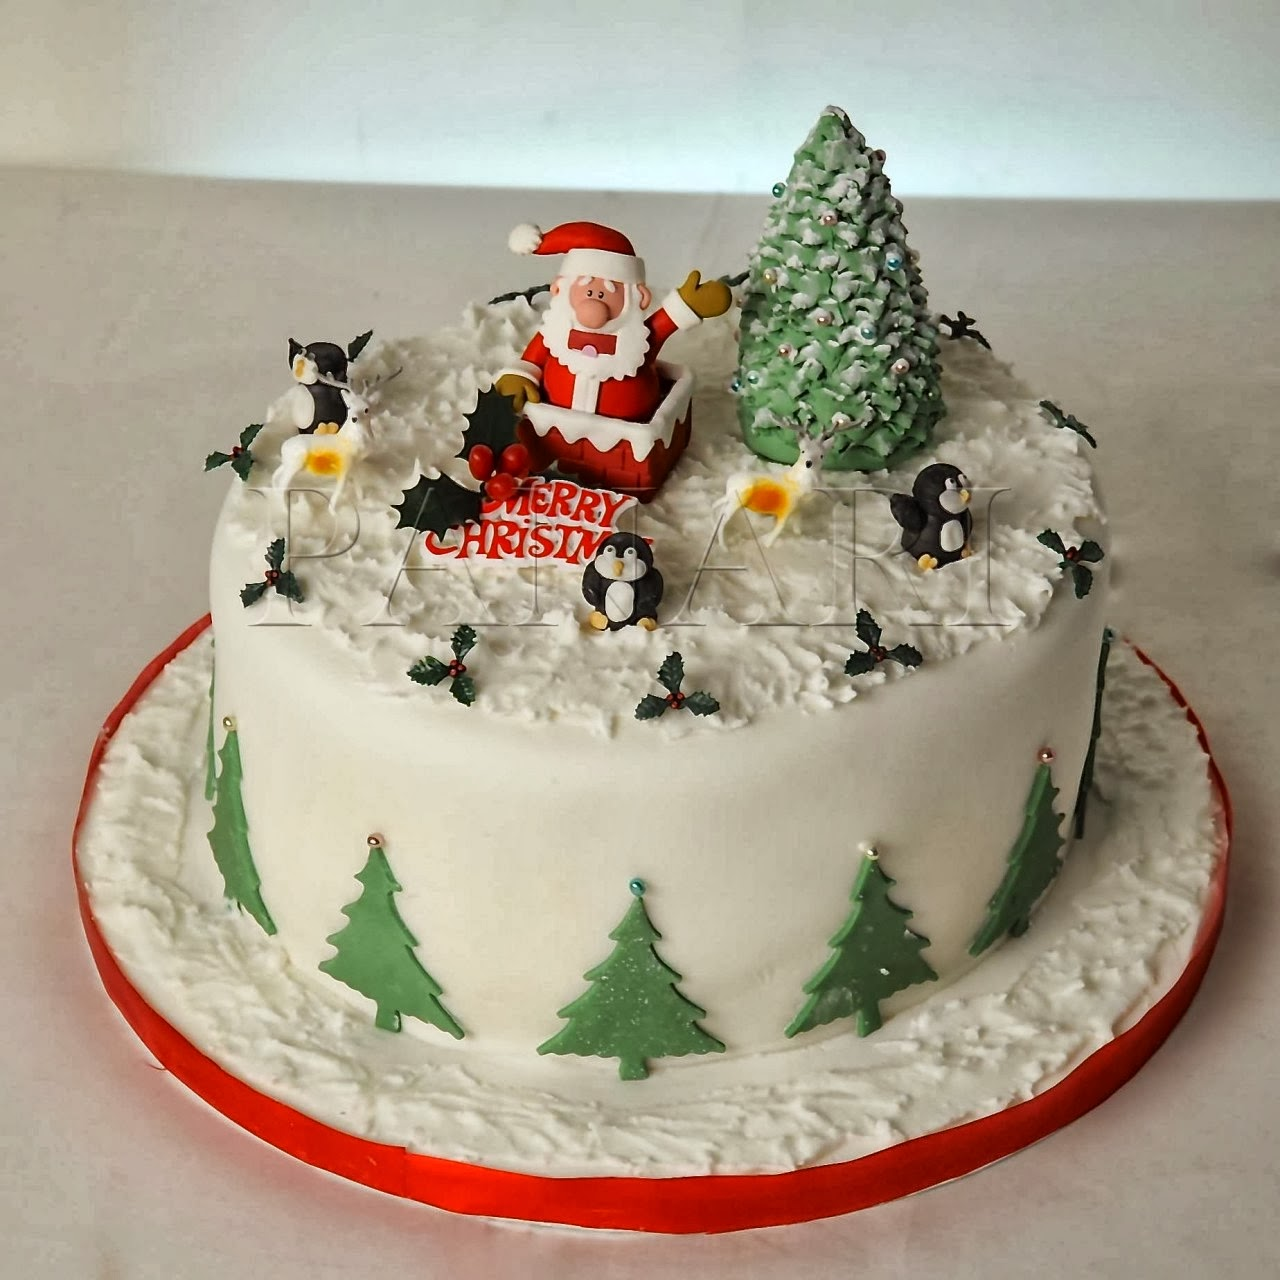 Christmas Cake Design 2018 : Download HD Christmas & New Year 2018 Bible Verse ...